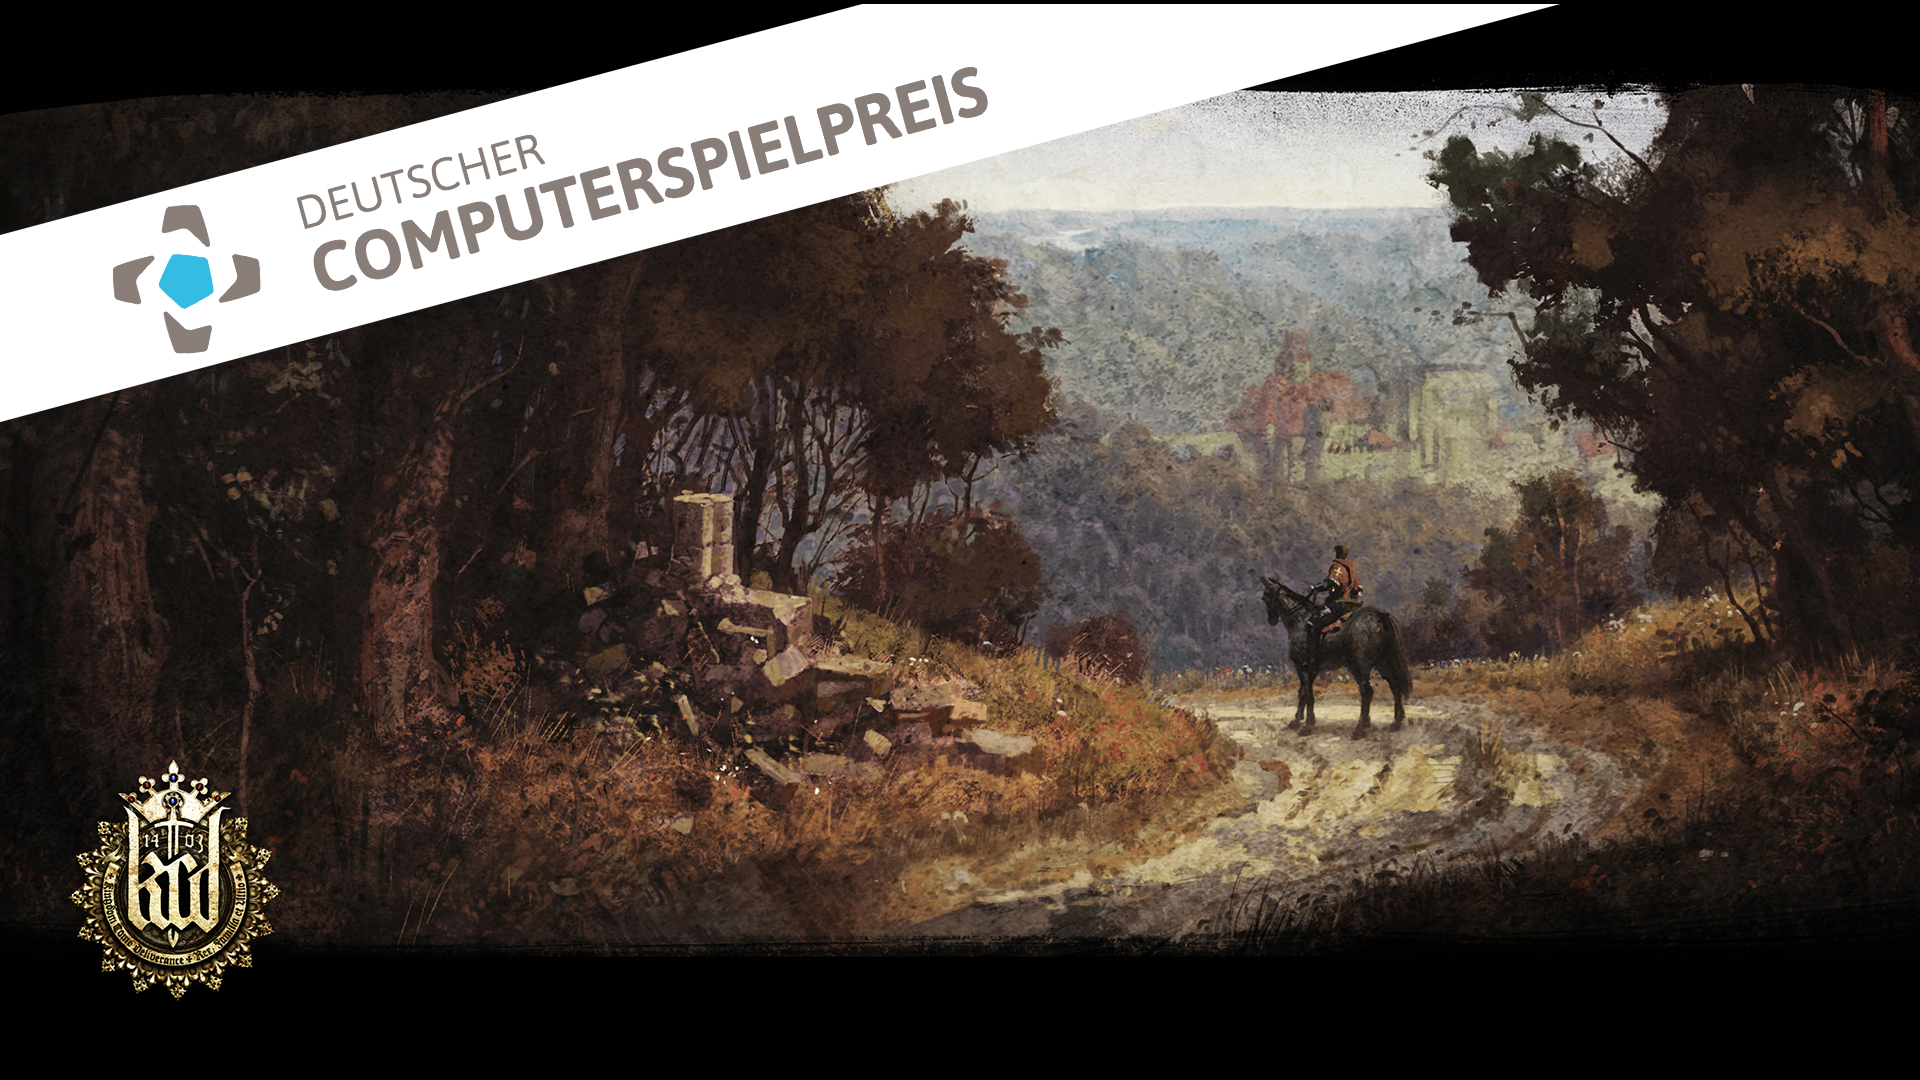 Eine Konzeptzeichnung zu Kingdom Come: Deliverance (Quelle: Pressematerial via Koch Media) und das Logo des Deutschen Computerspielpreises (Quelle: Pressematerial via Quinke Networks). Collage: Felix Zimmermann